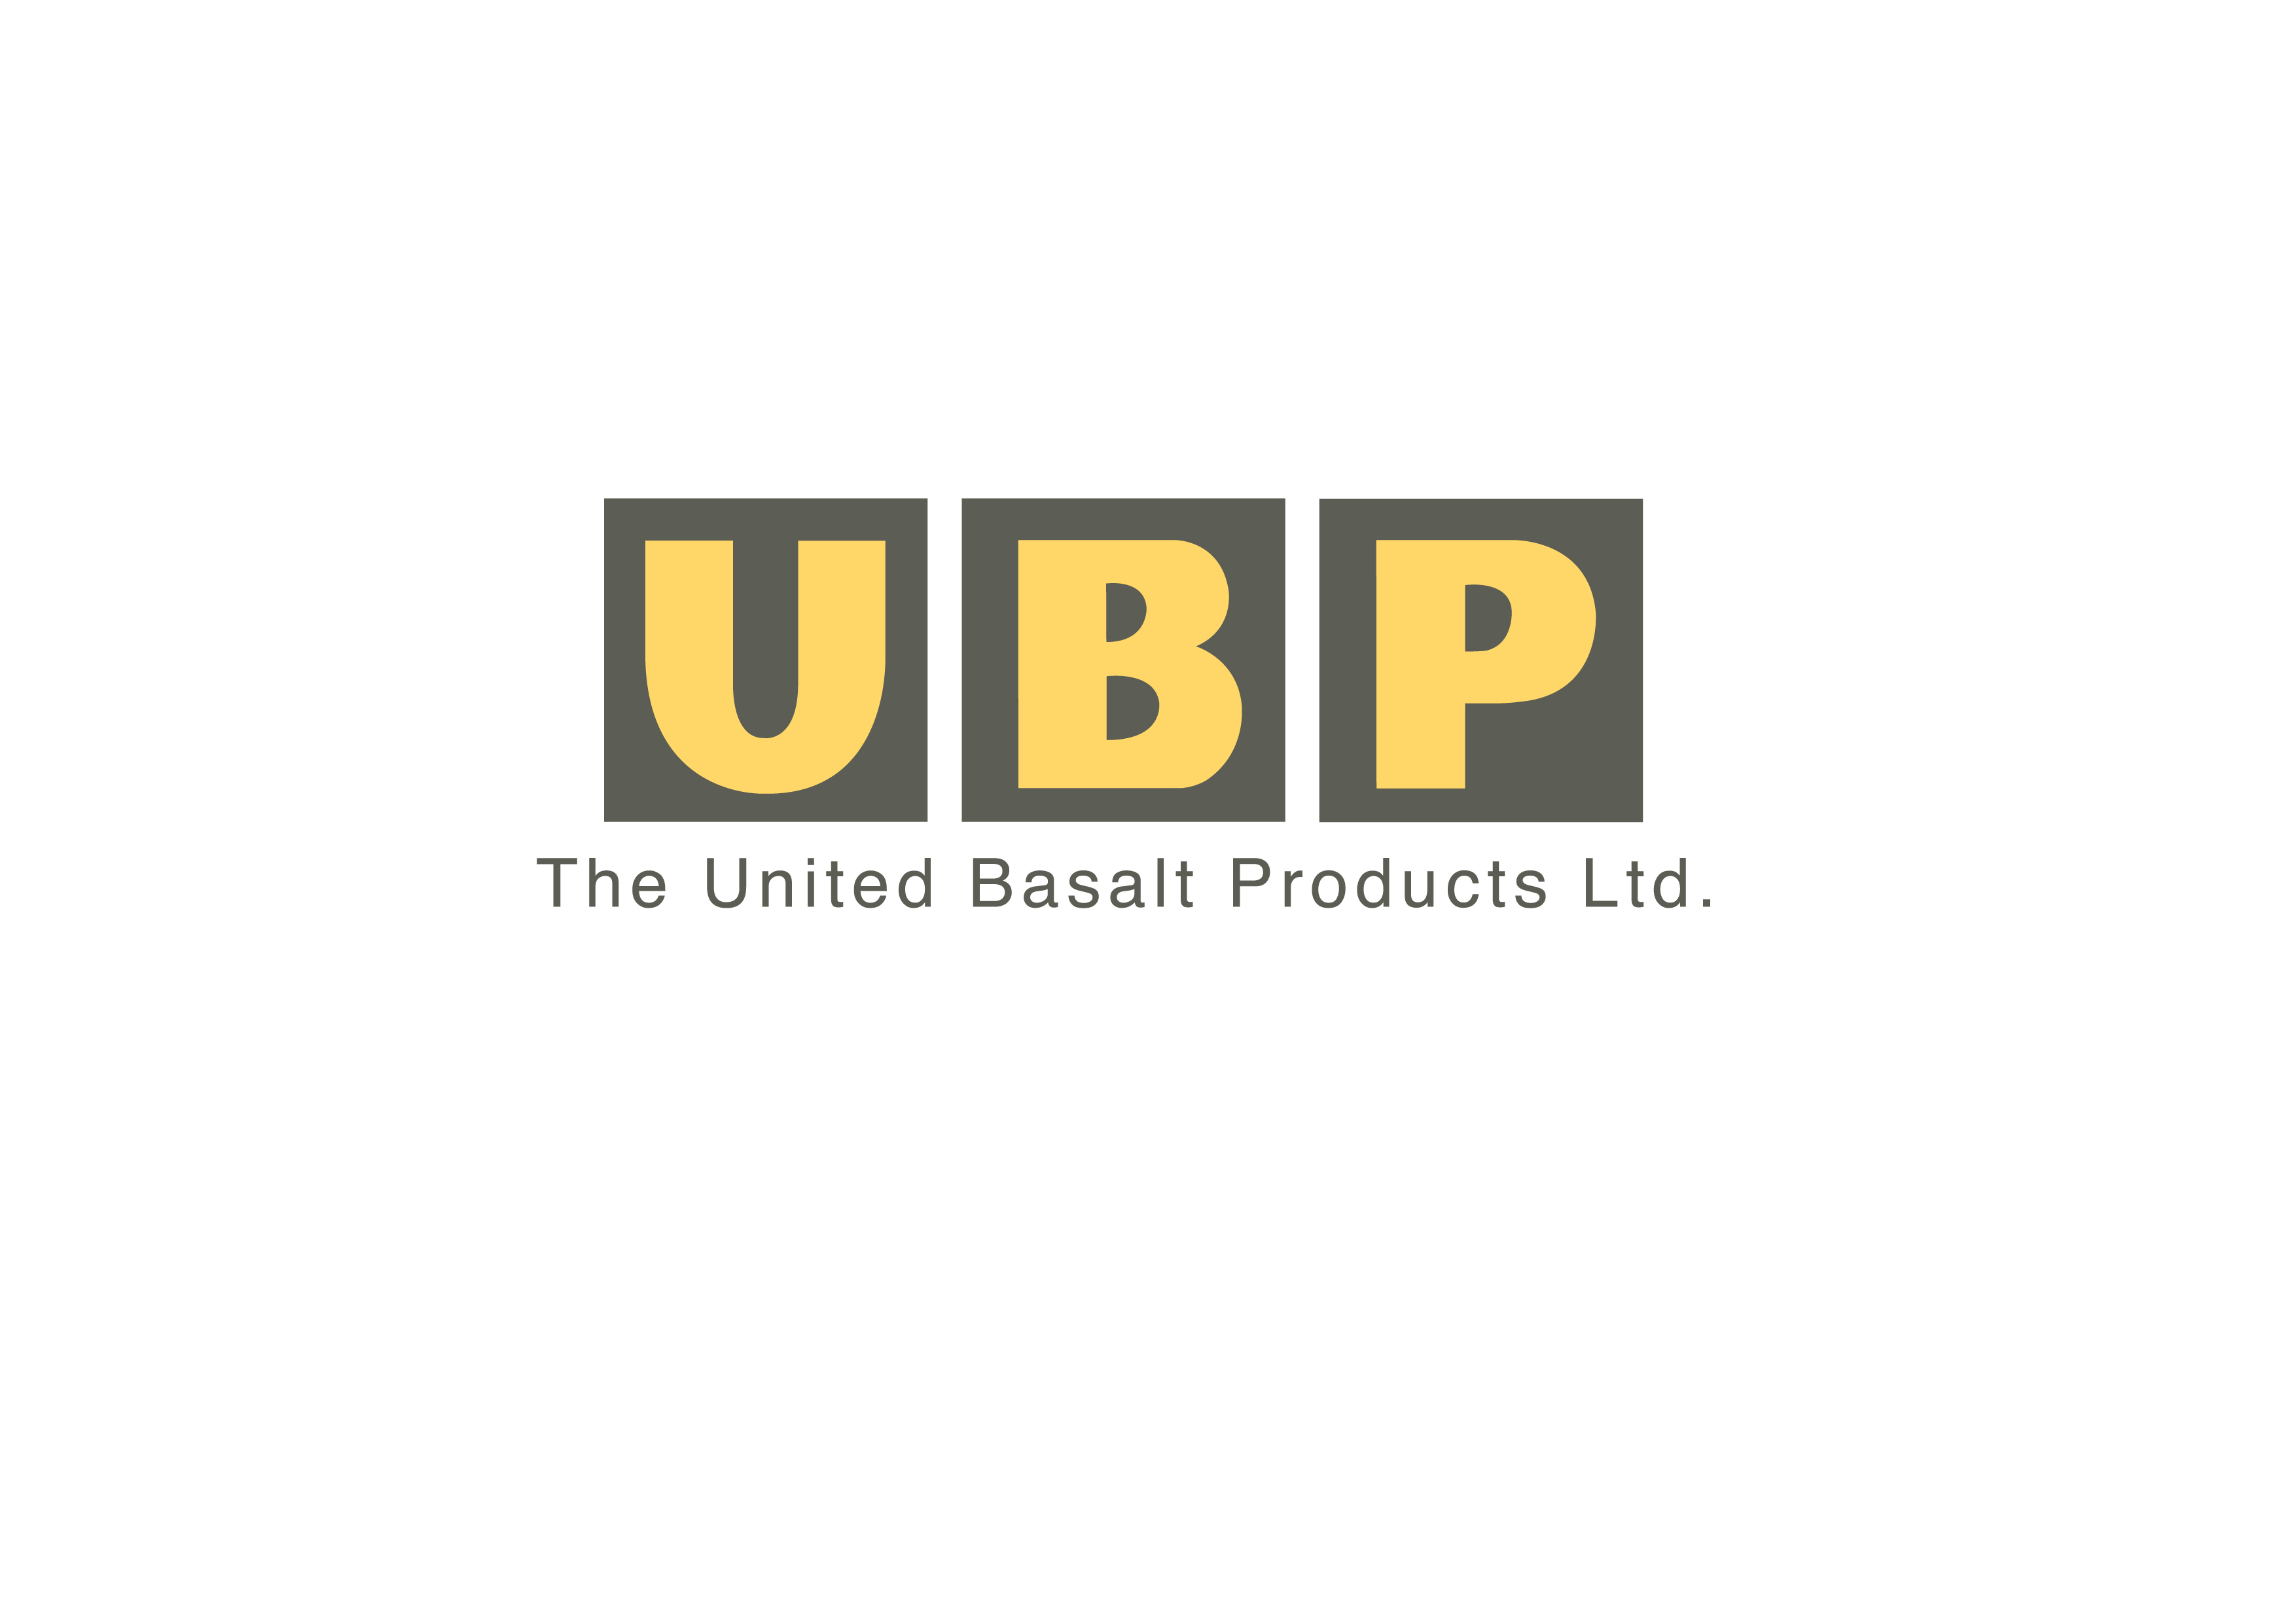 The United Basalt Products Co. Ltd.